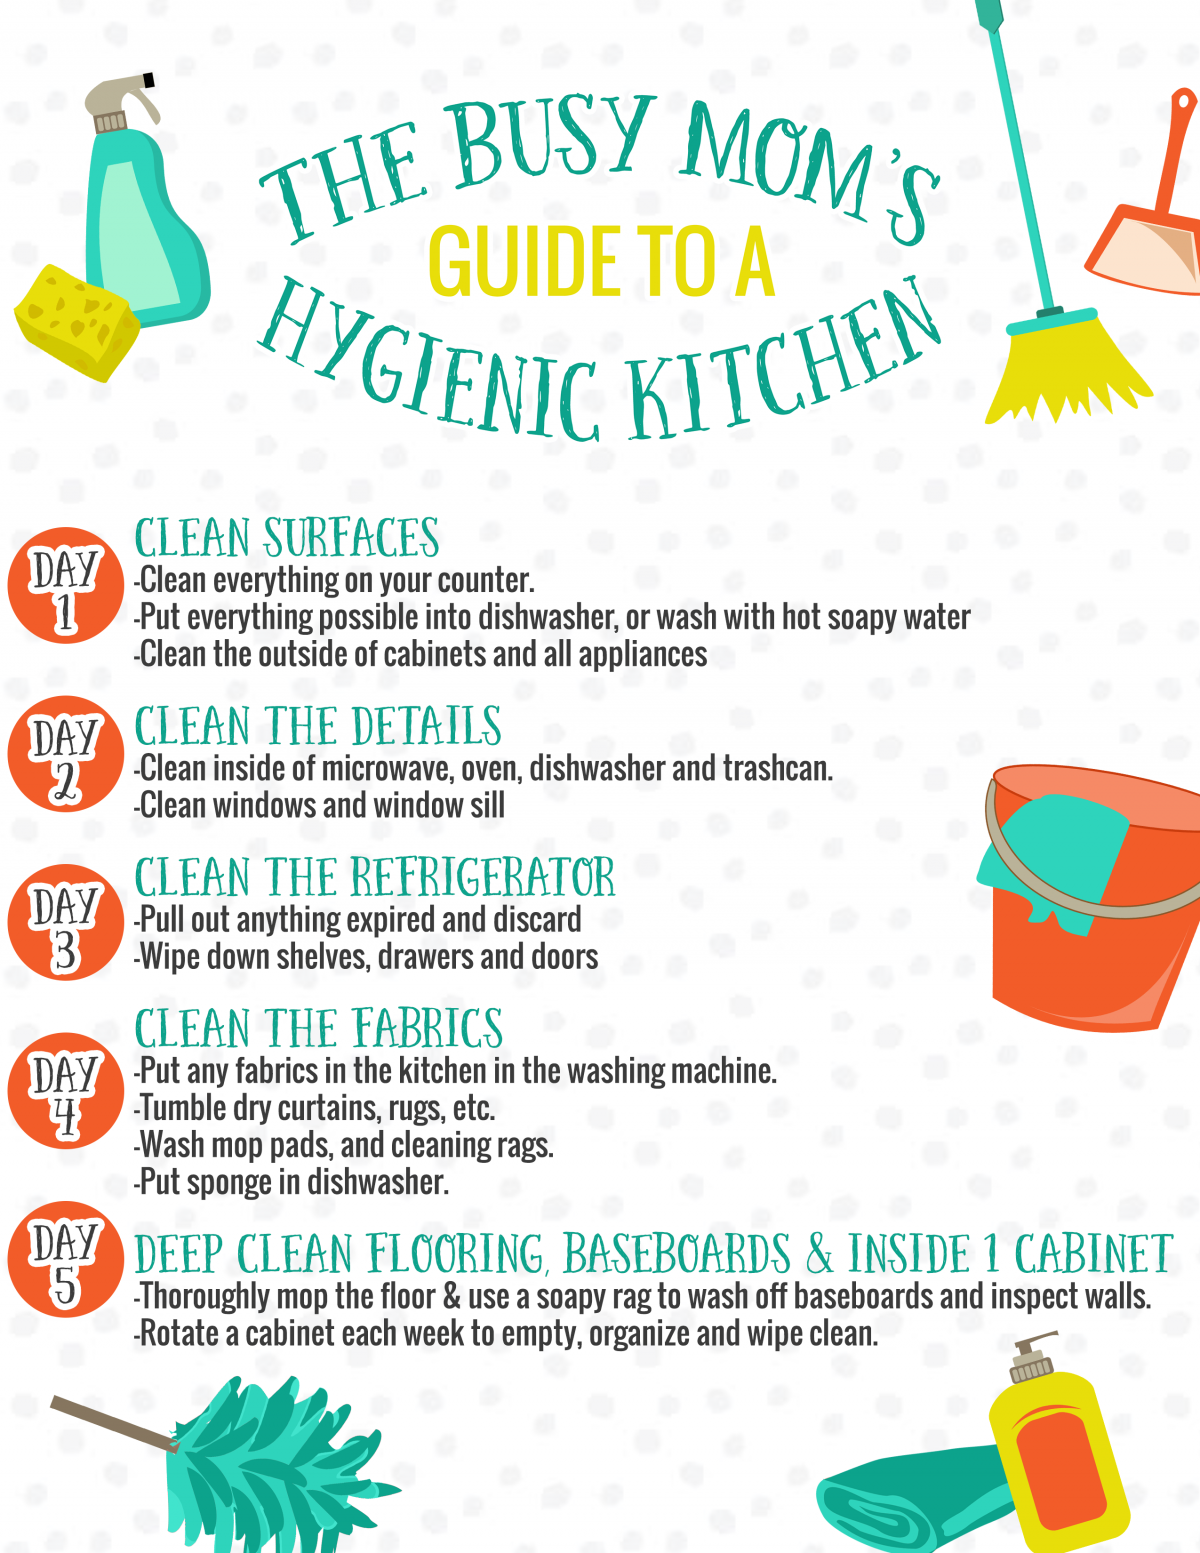 The Busy Mom\'s Guide to a Hygienic Kitchen - Daily Mom